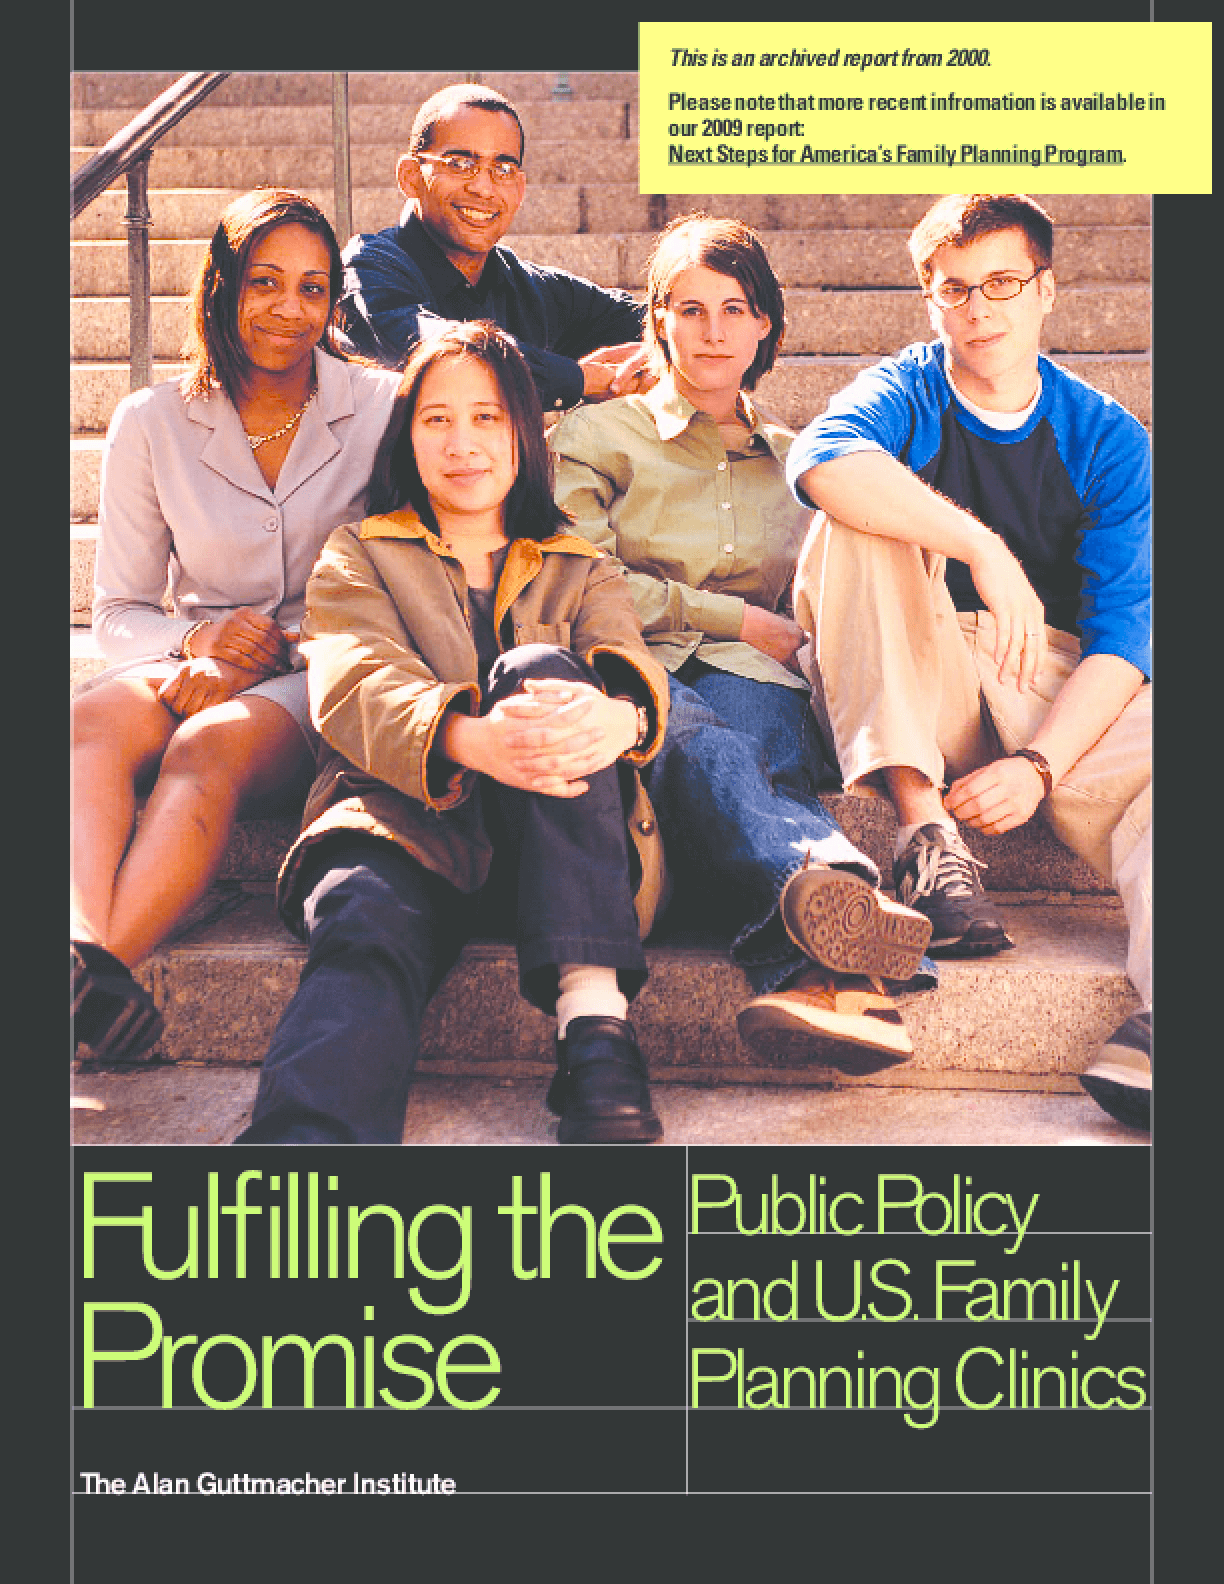 Fulfilling the Promise: Public Policy and U.S. Family Planning Clinics